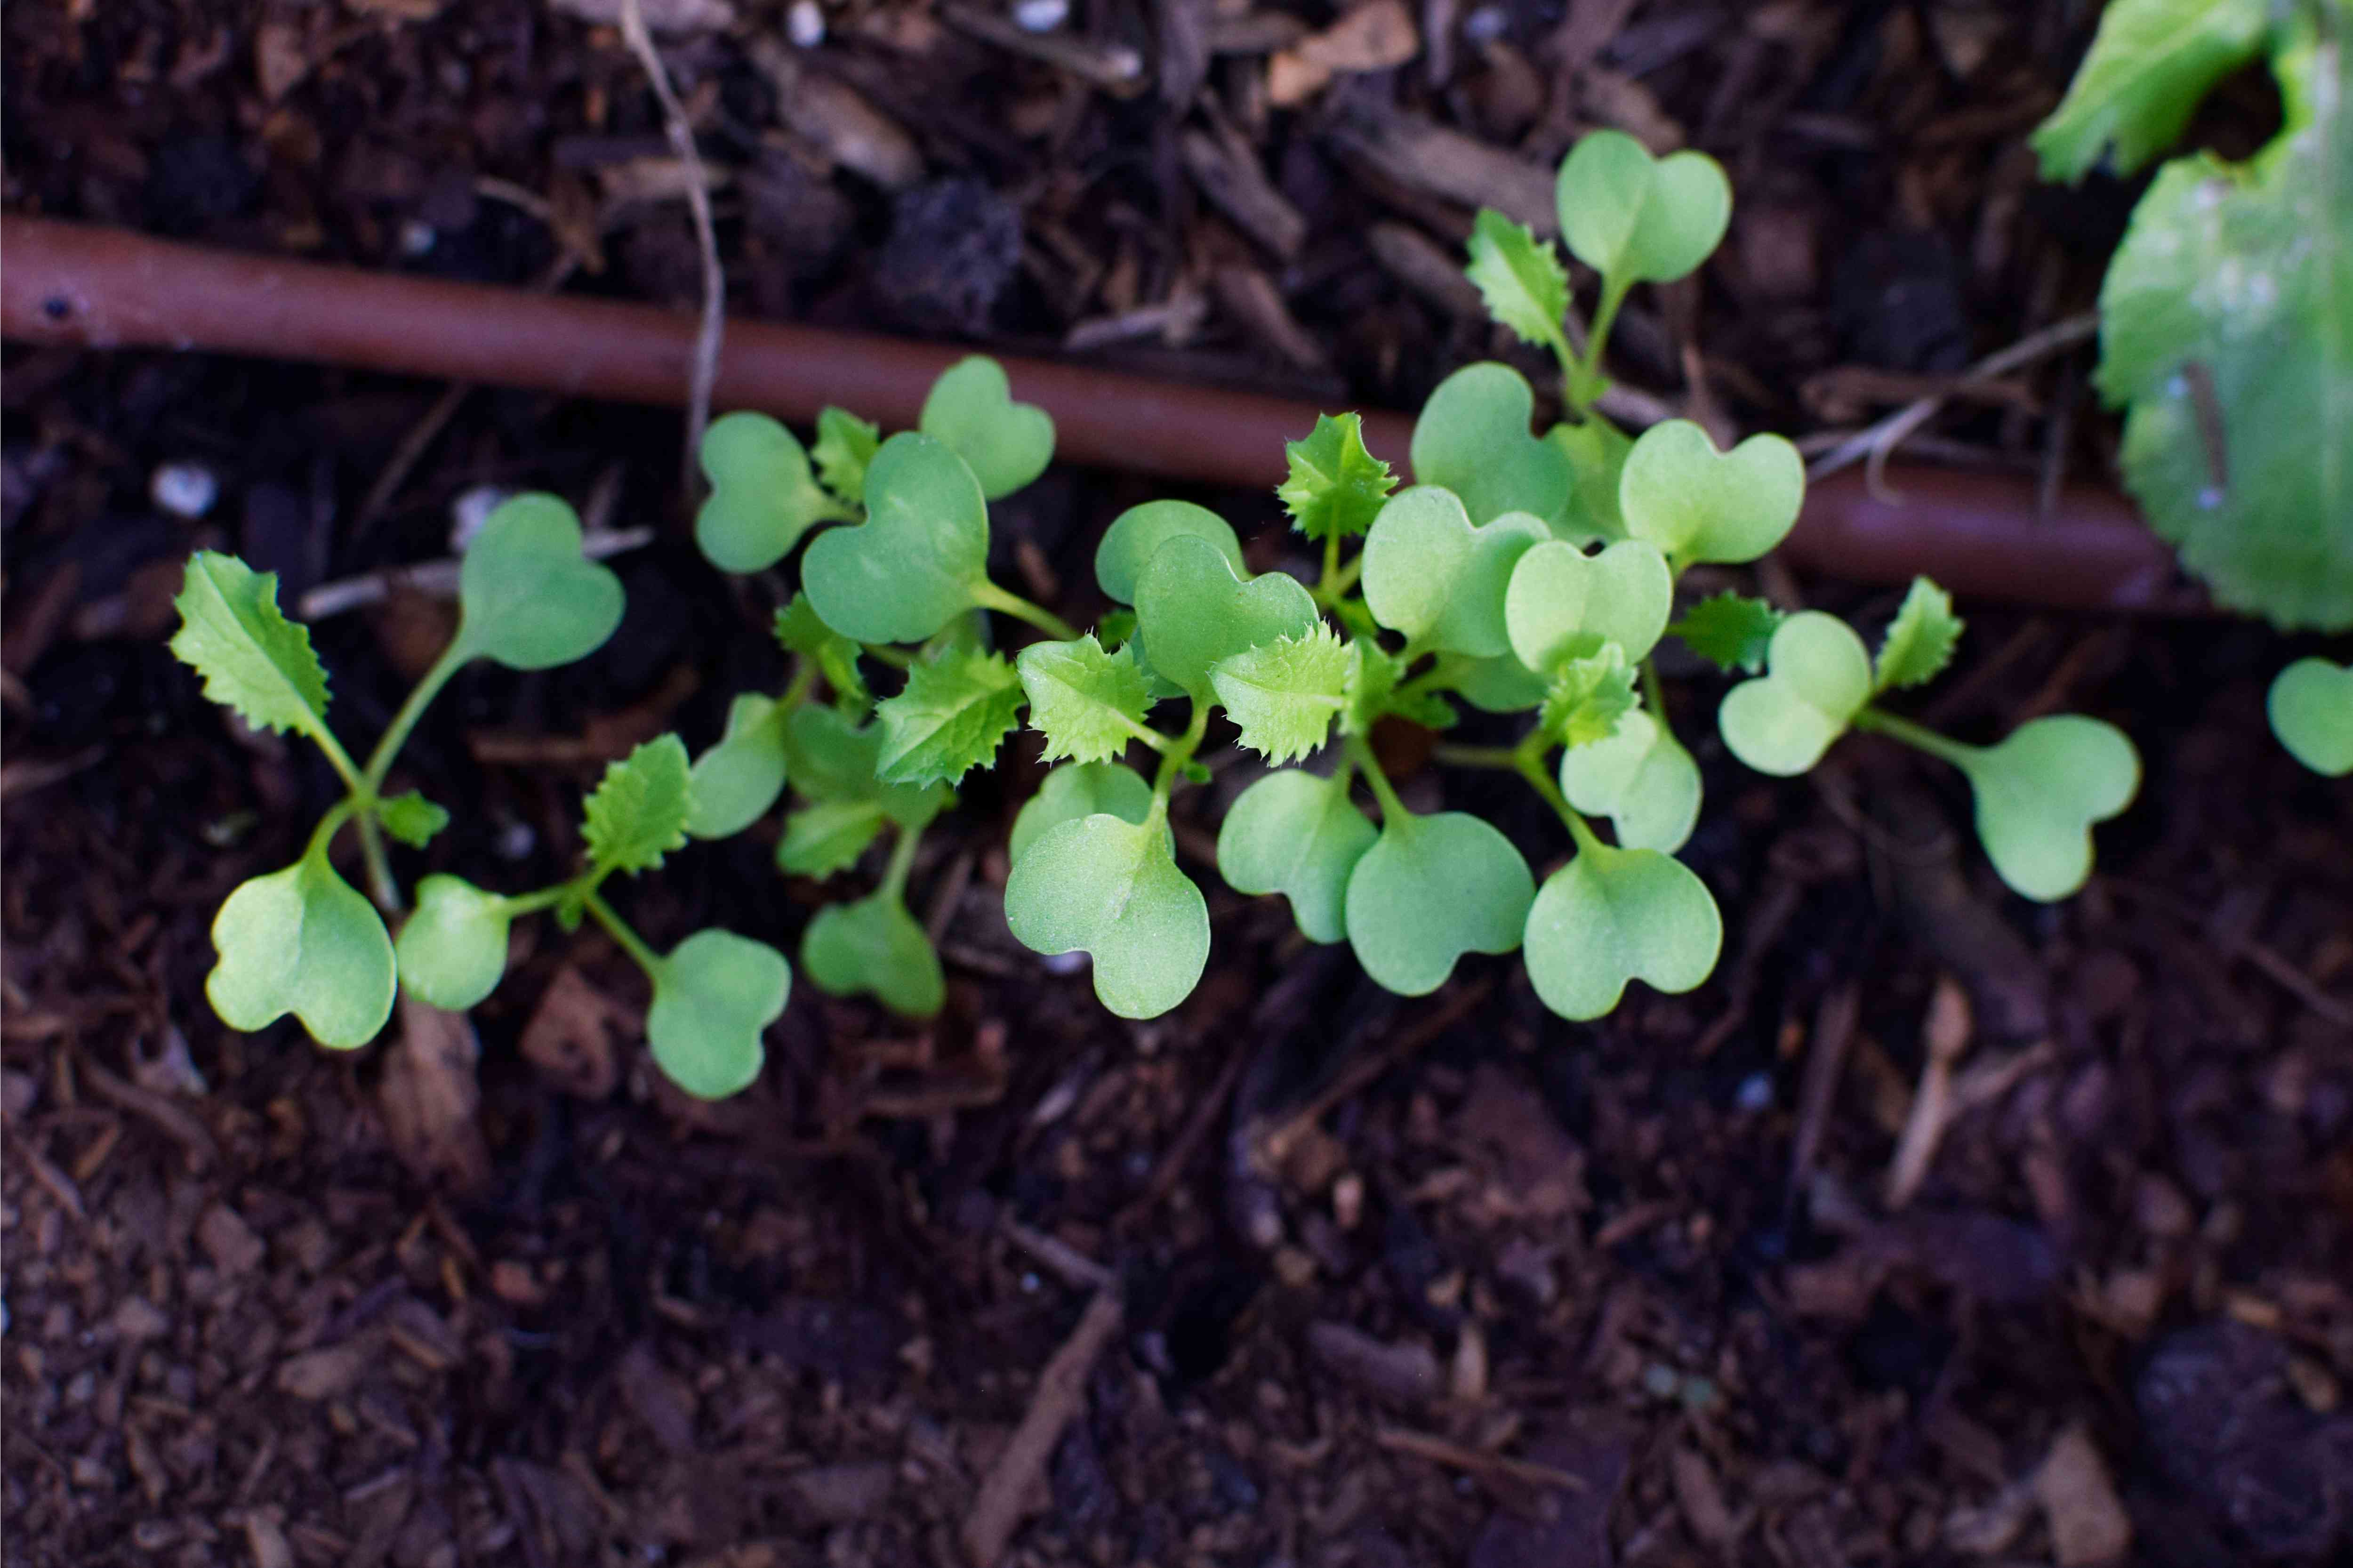 Turnips growing with small sprouts planted in ground